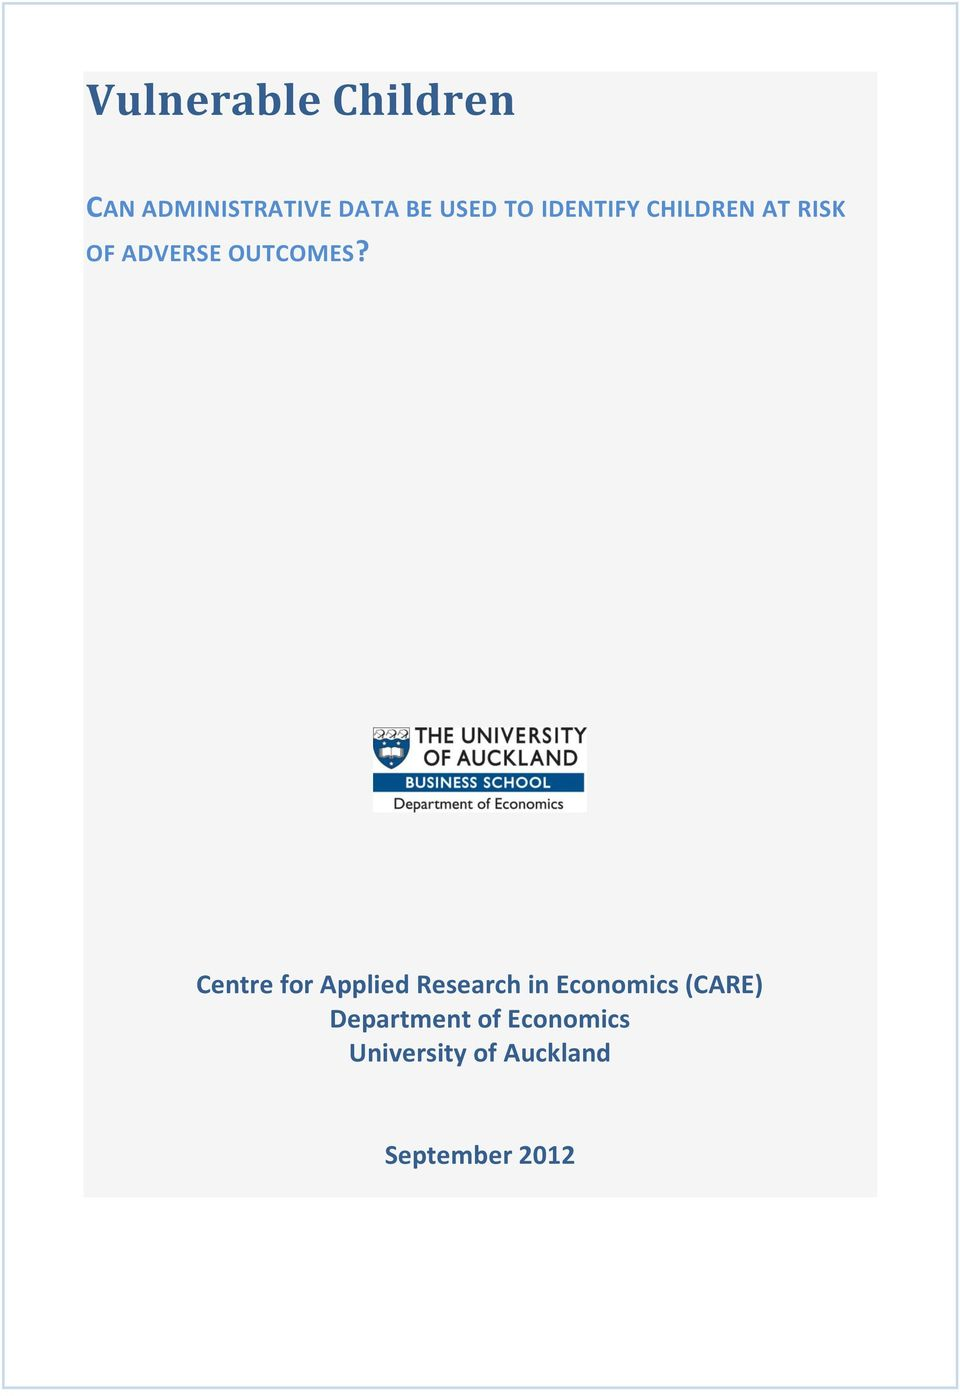 Centre for Applied Research in Economics (CARE)